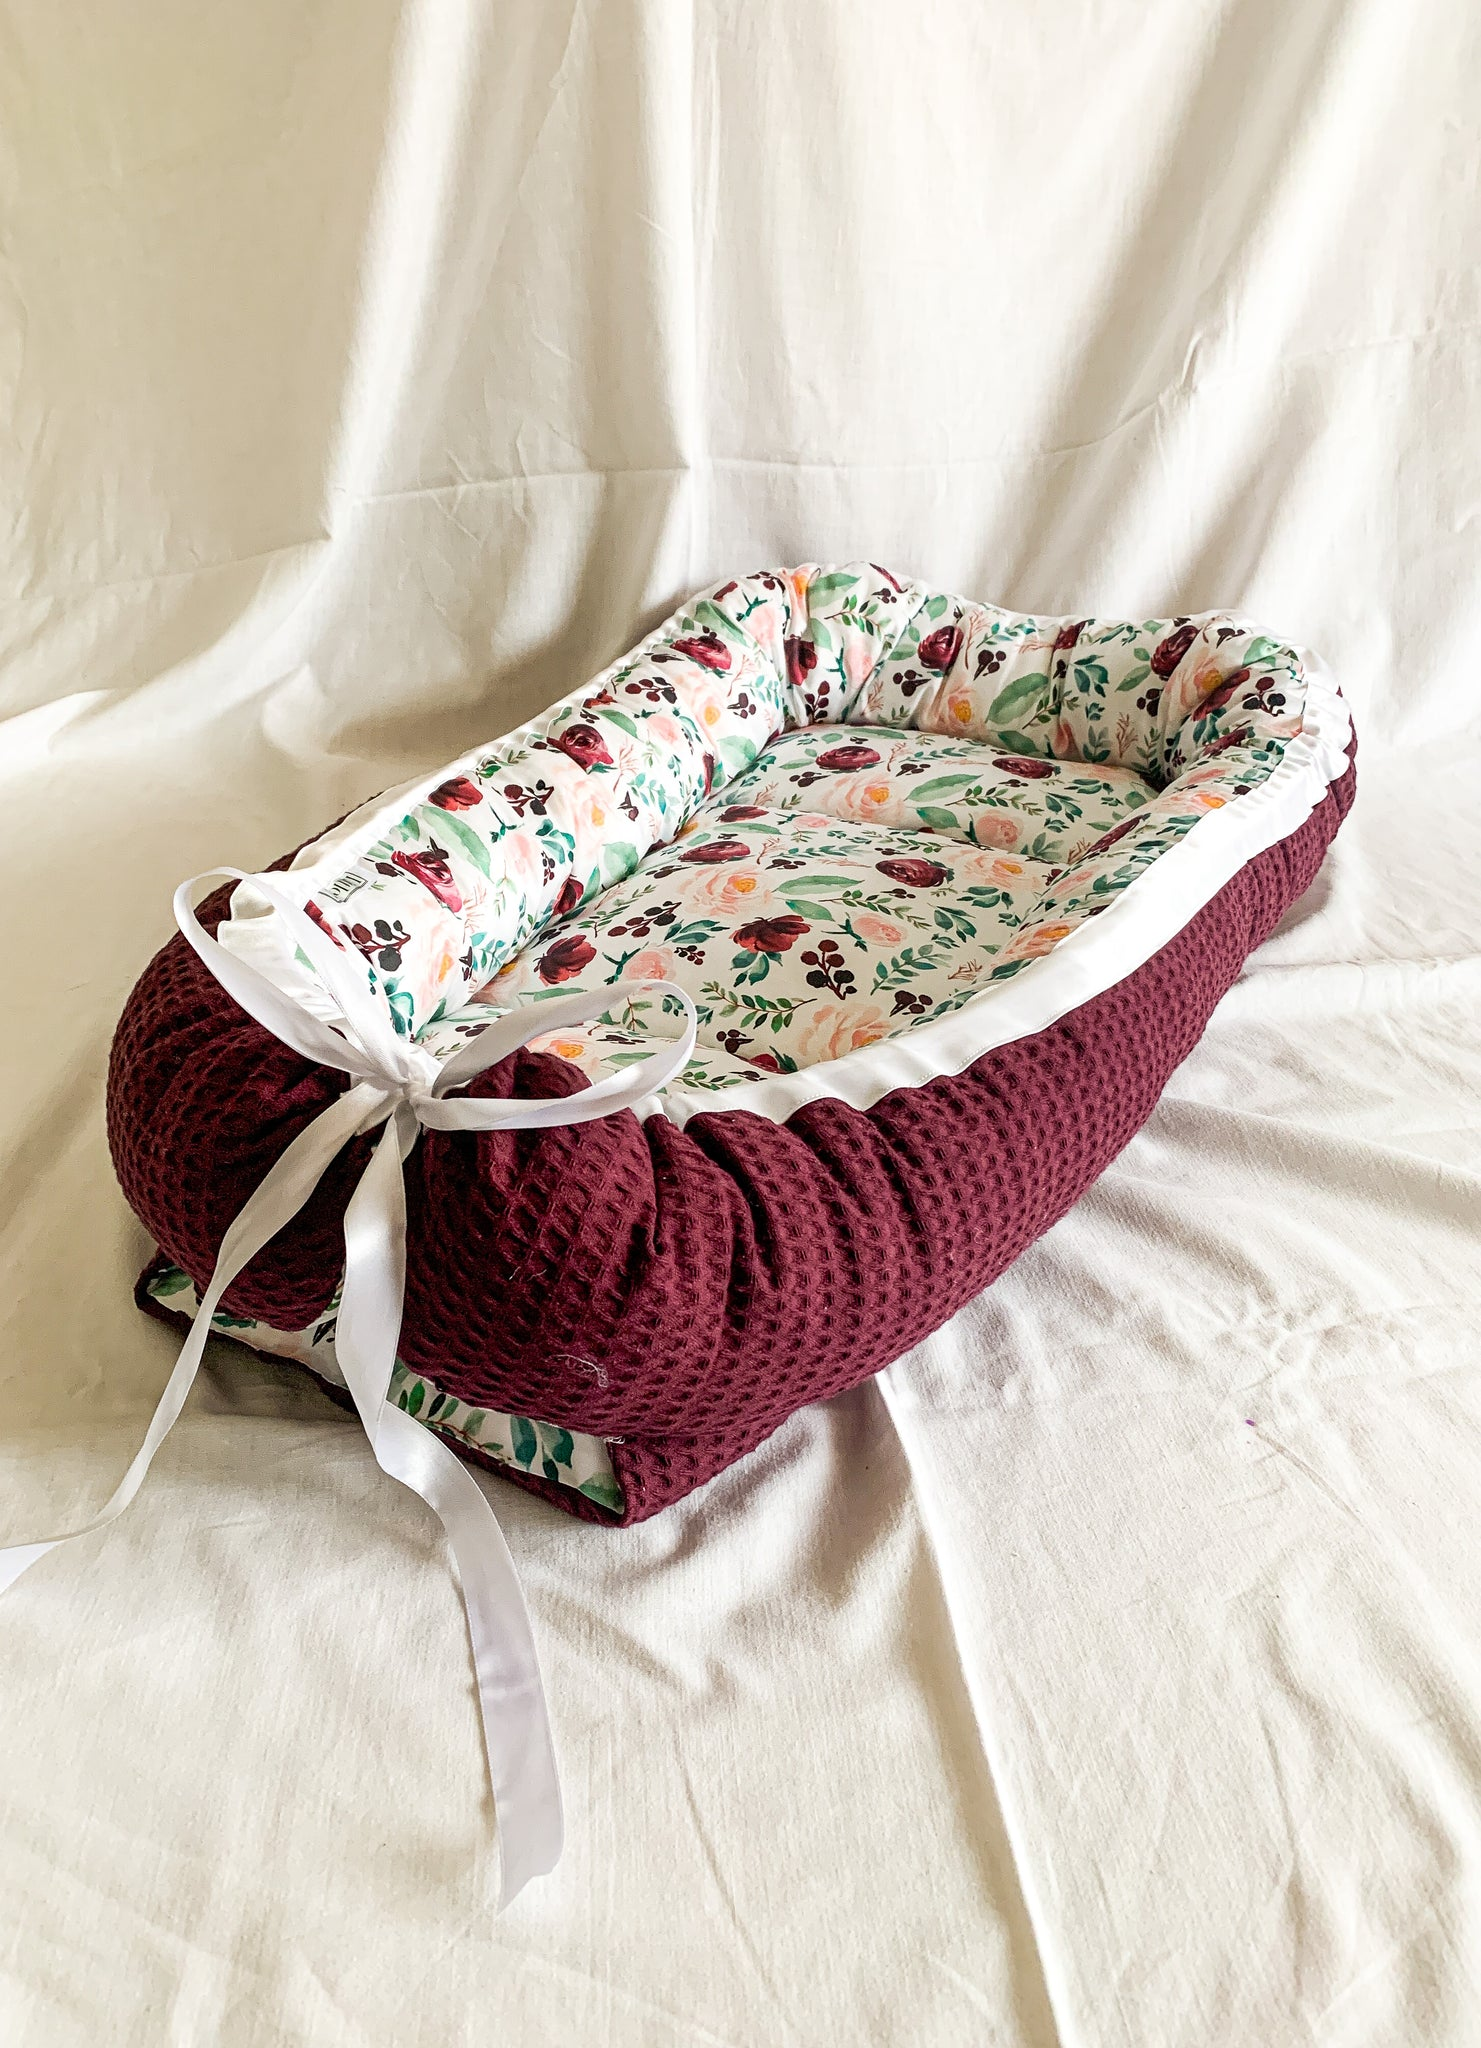 BABY NEST - INDIVIDUELL